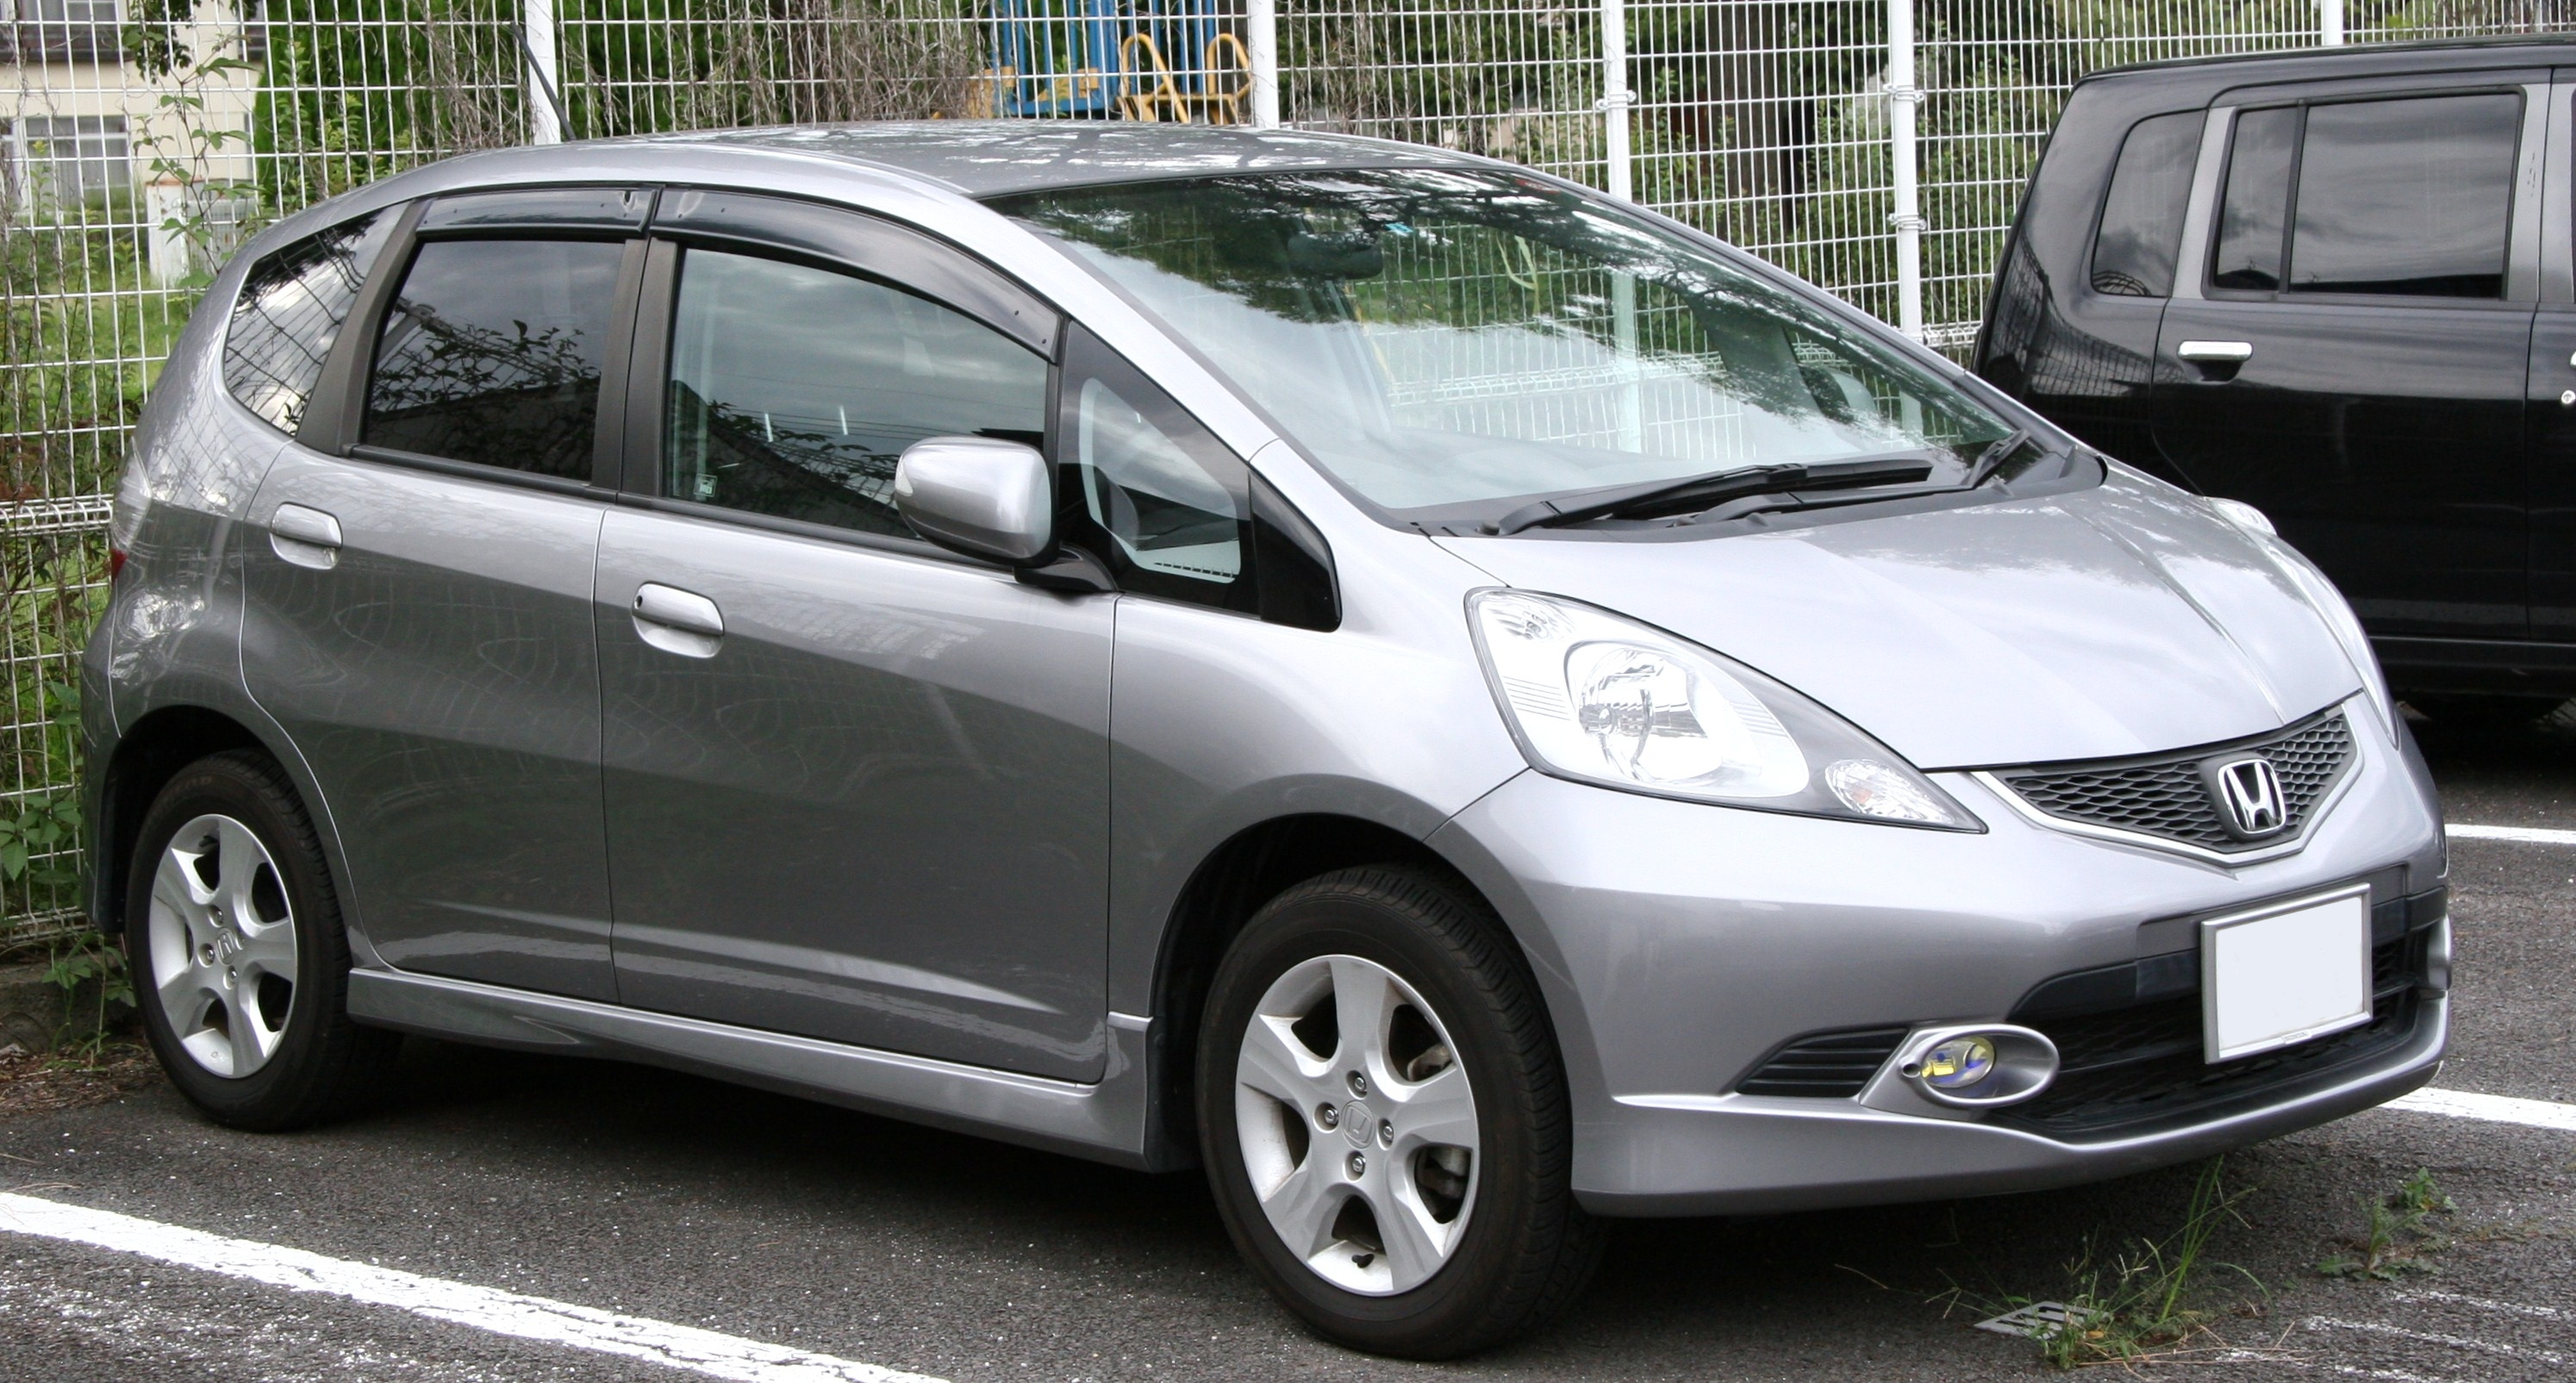 Superb 2010 Honda Fit #11